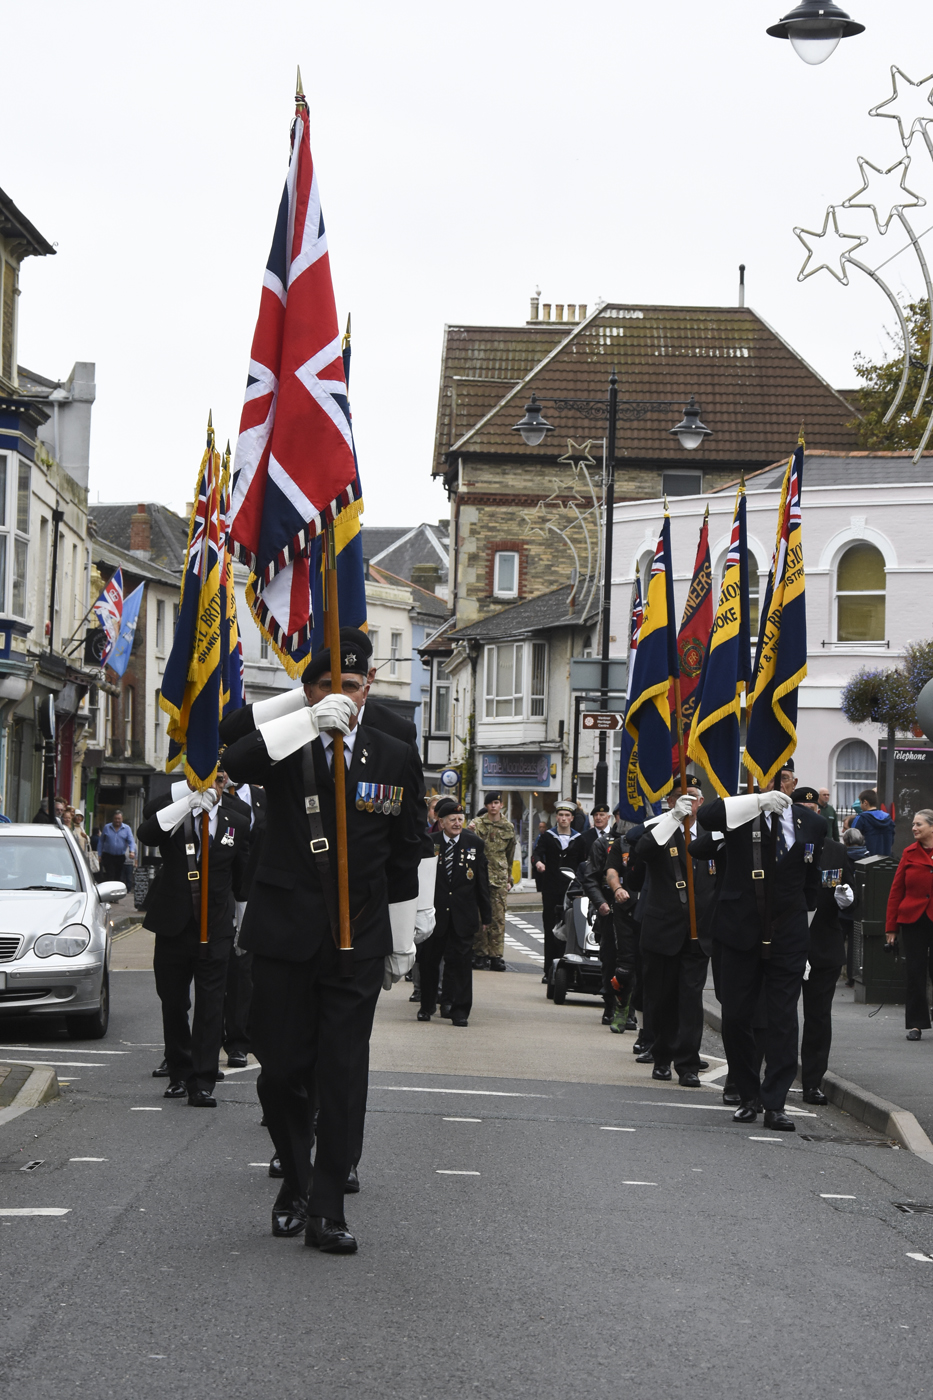 20161029_stp_3501-hss-launch-of-the-poppy-appeal-2016-in-ventnor